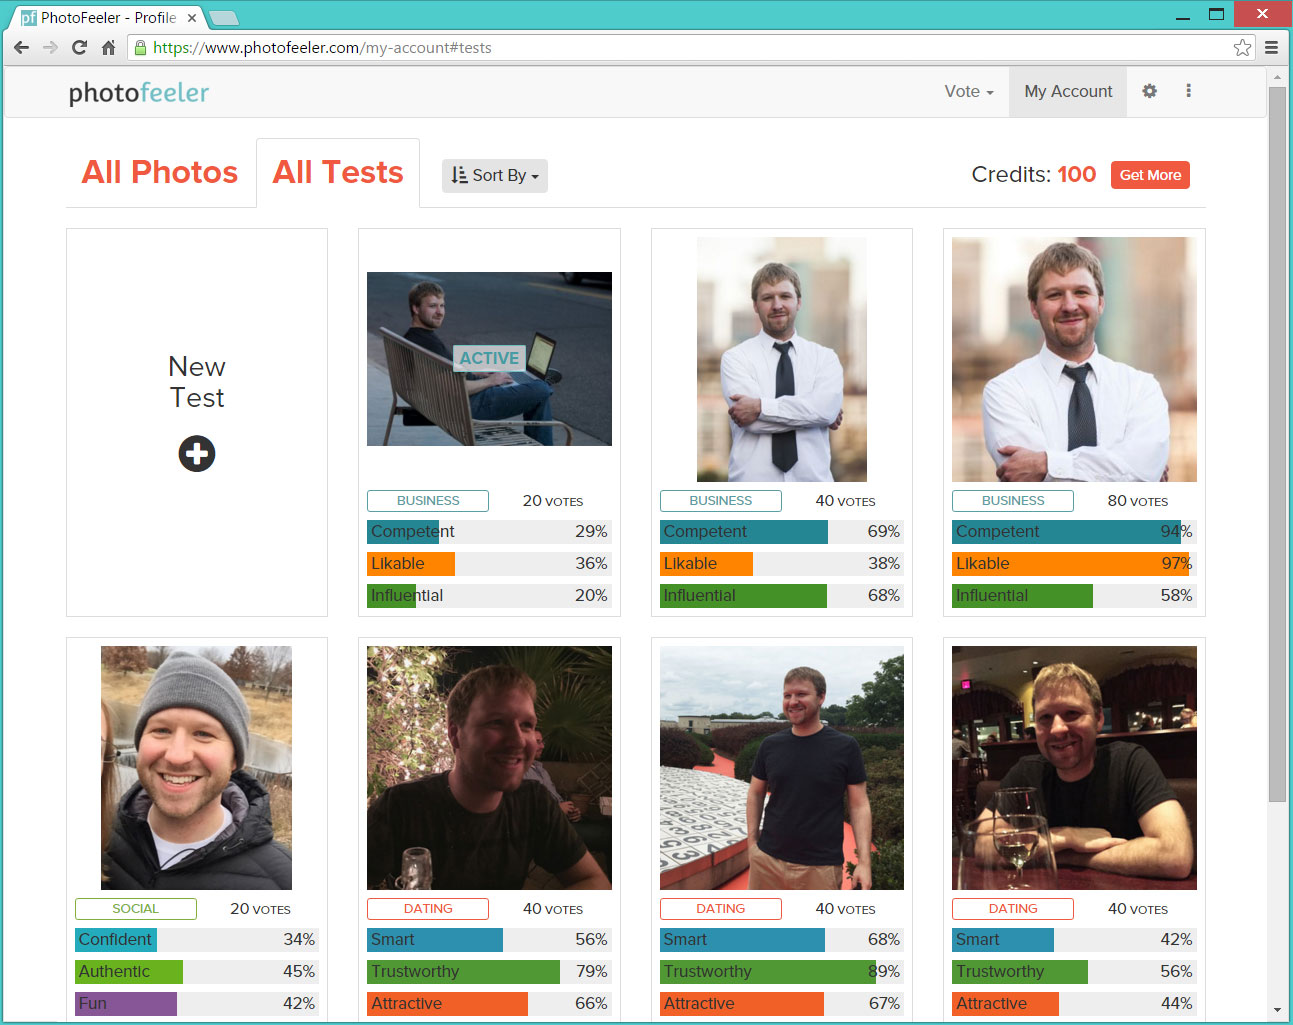 PhotoFeeler account page with business, social, and dating photo tests